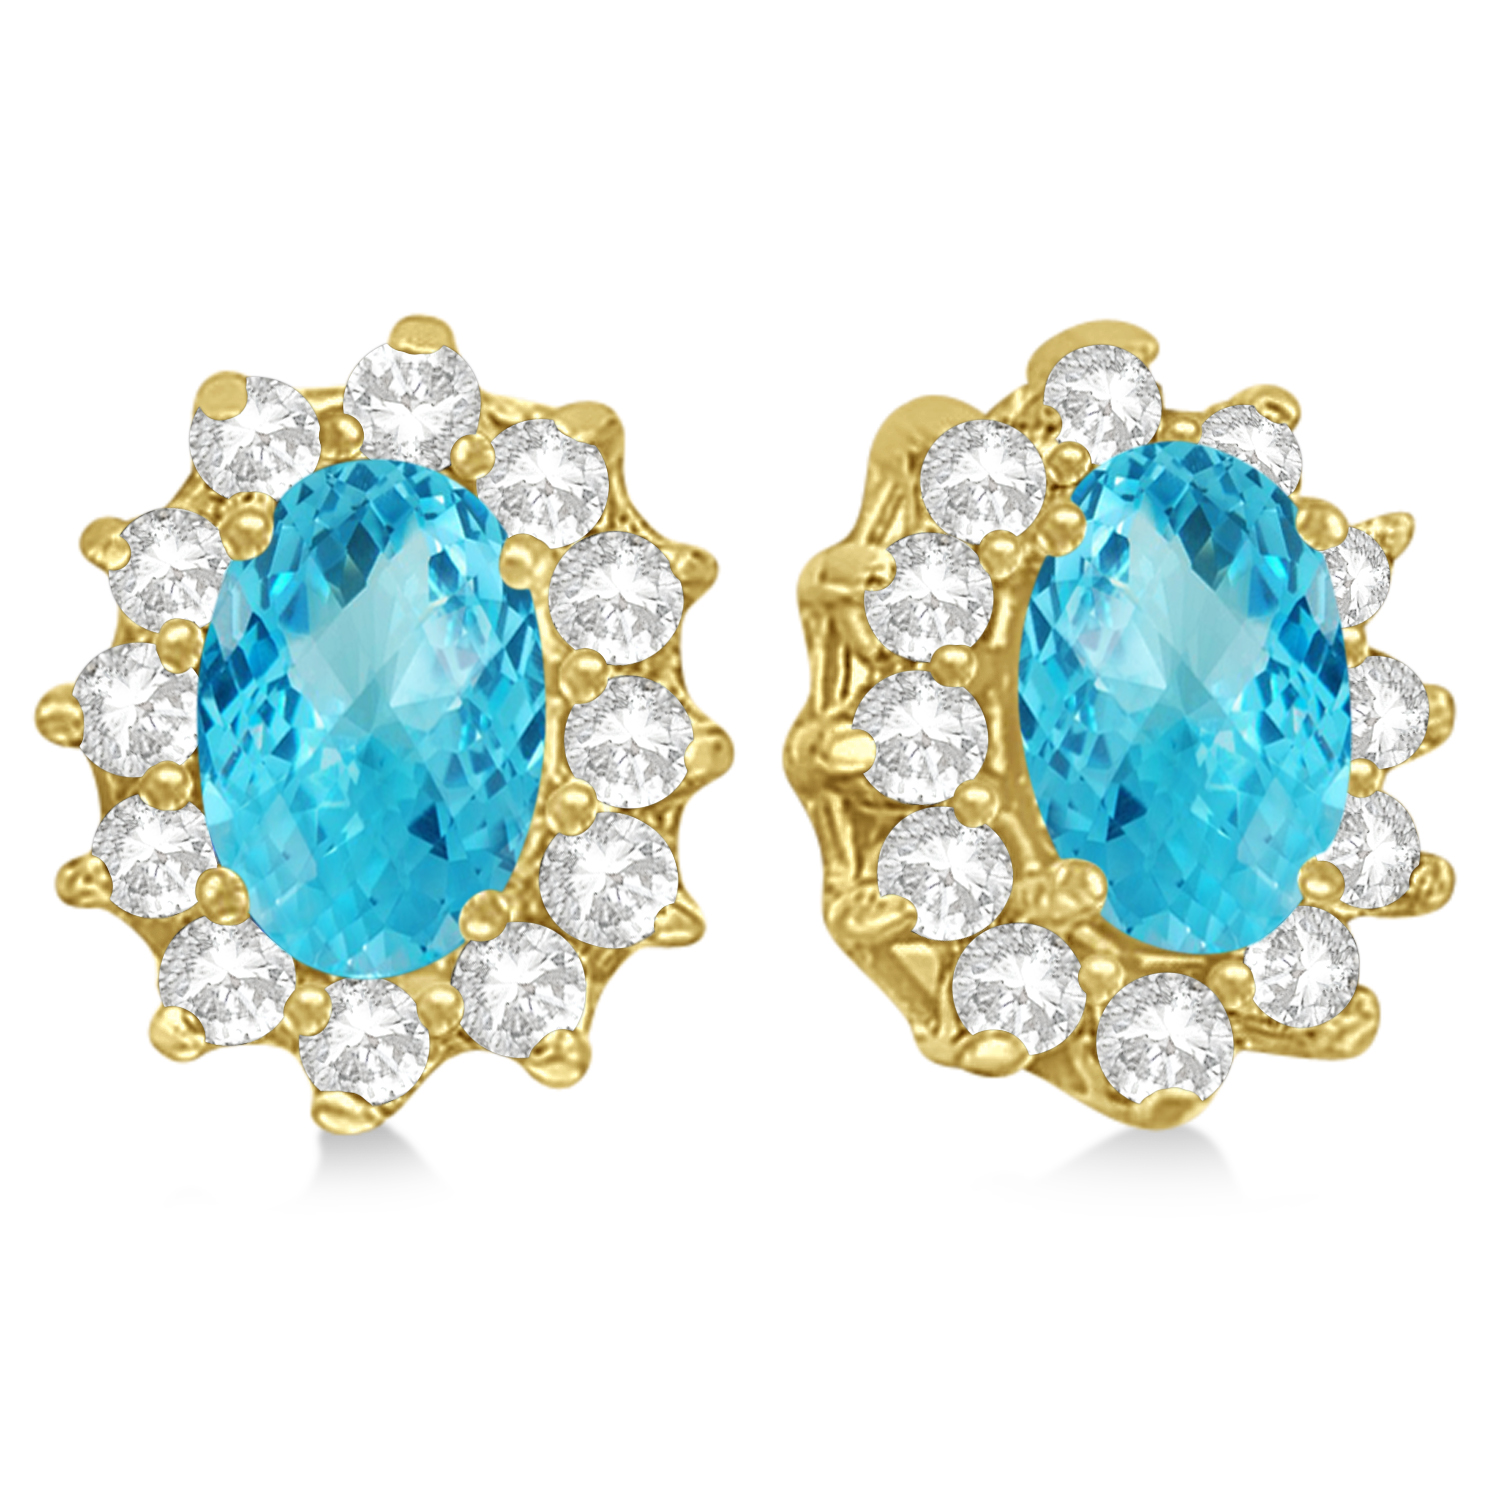 Oval Blue Topaz & Diamond Accented Earrings 14k Yellow Gold (2.05ct)